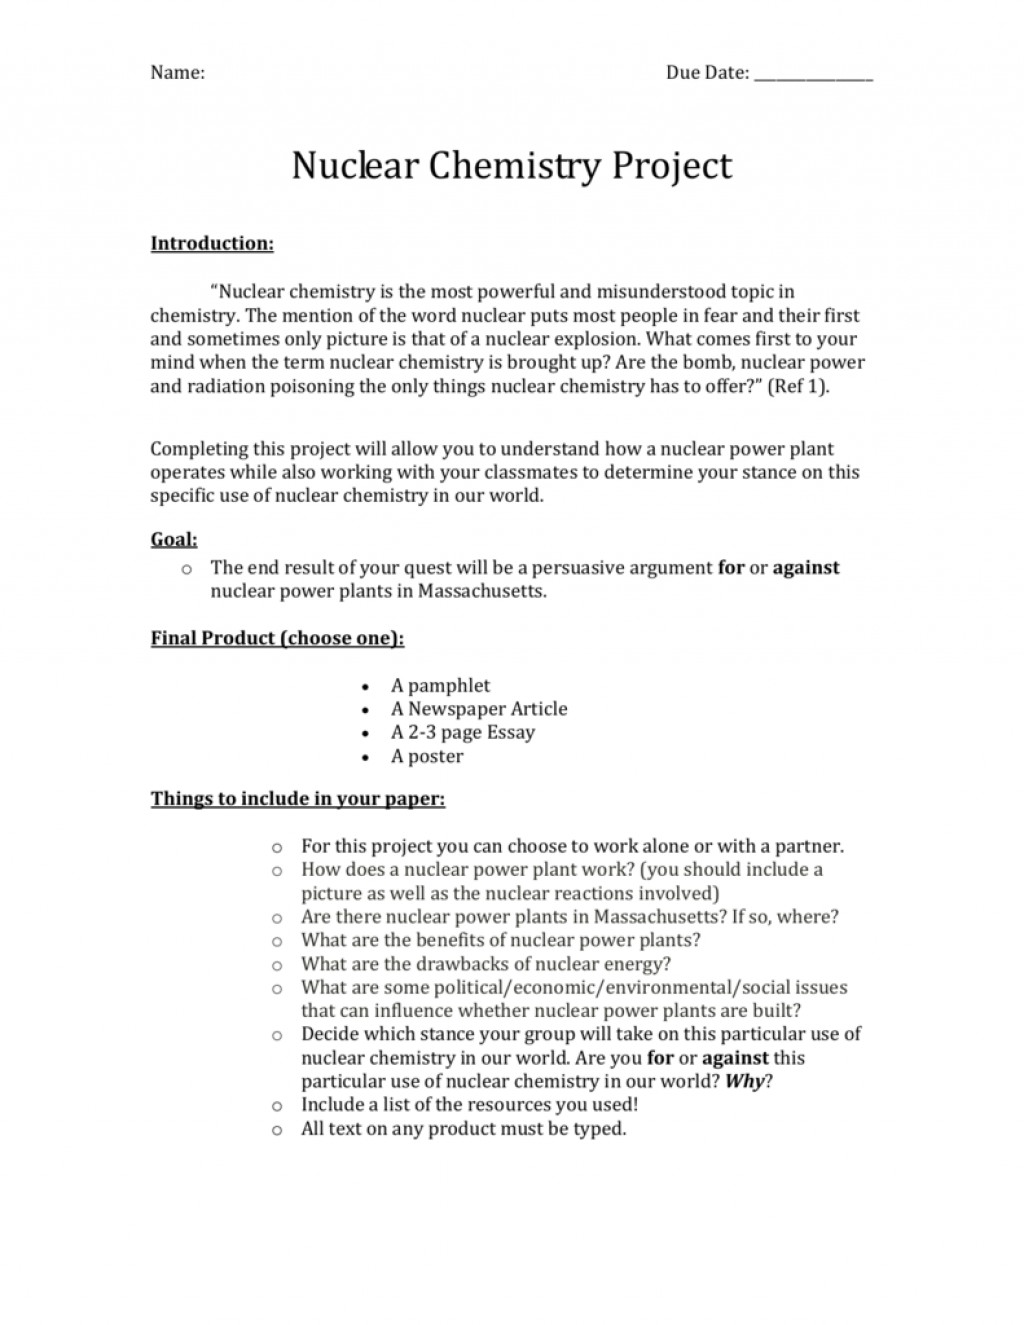 002 Nuclear Chemistry Essay 007069203 1 Awesome Advantages And Disadvantages Large